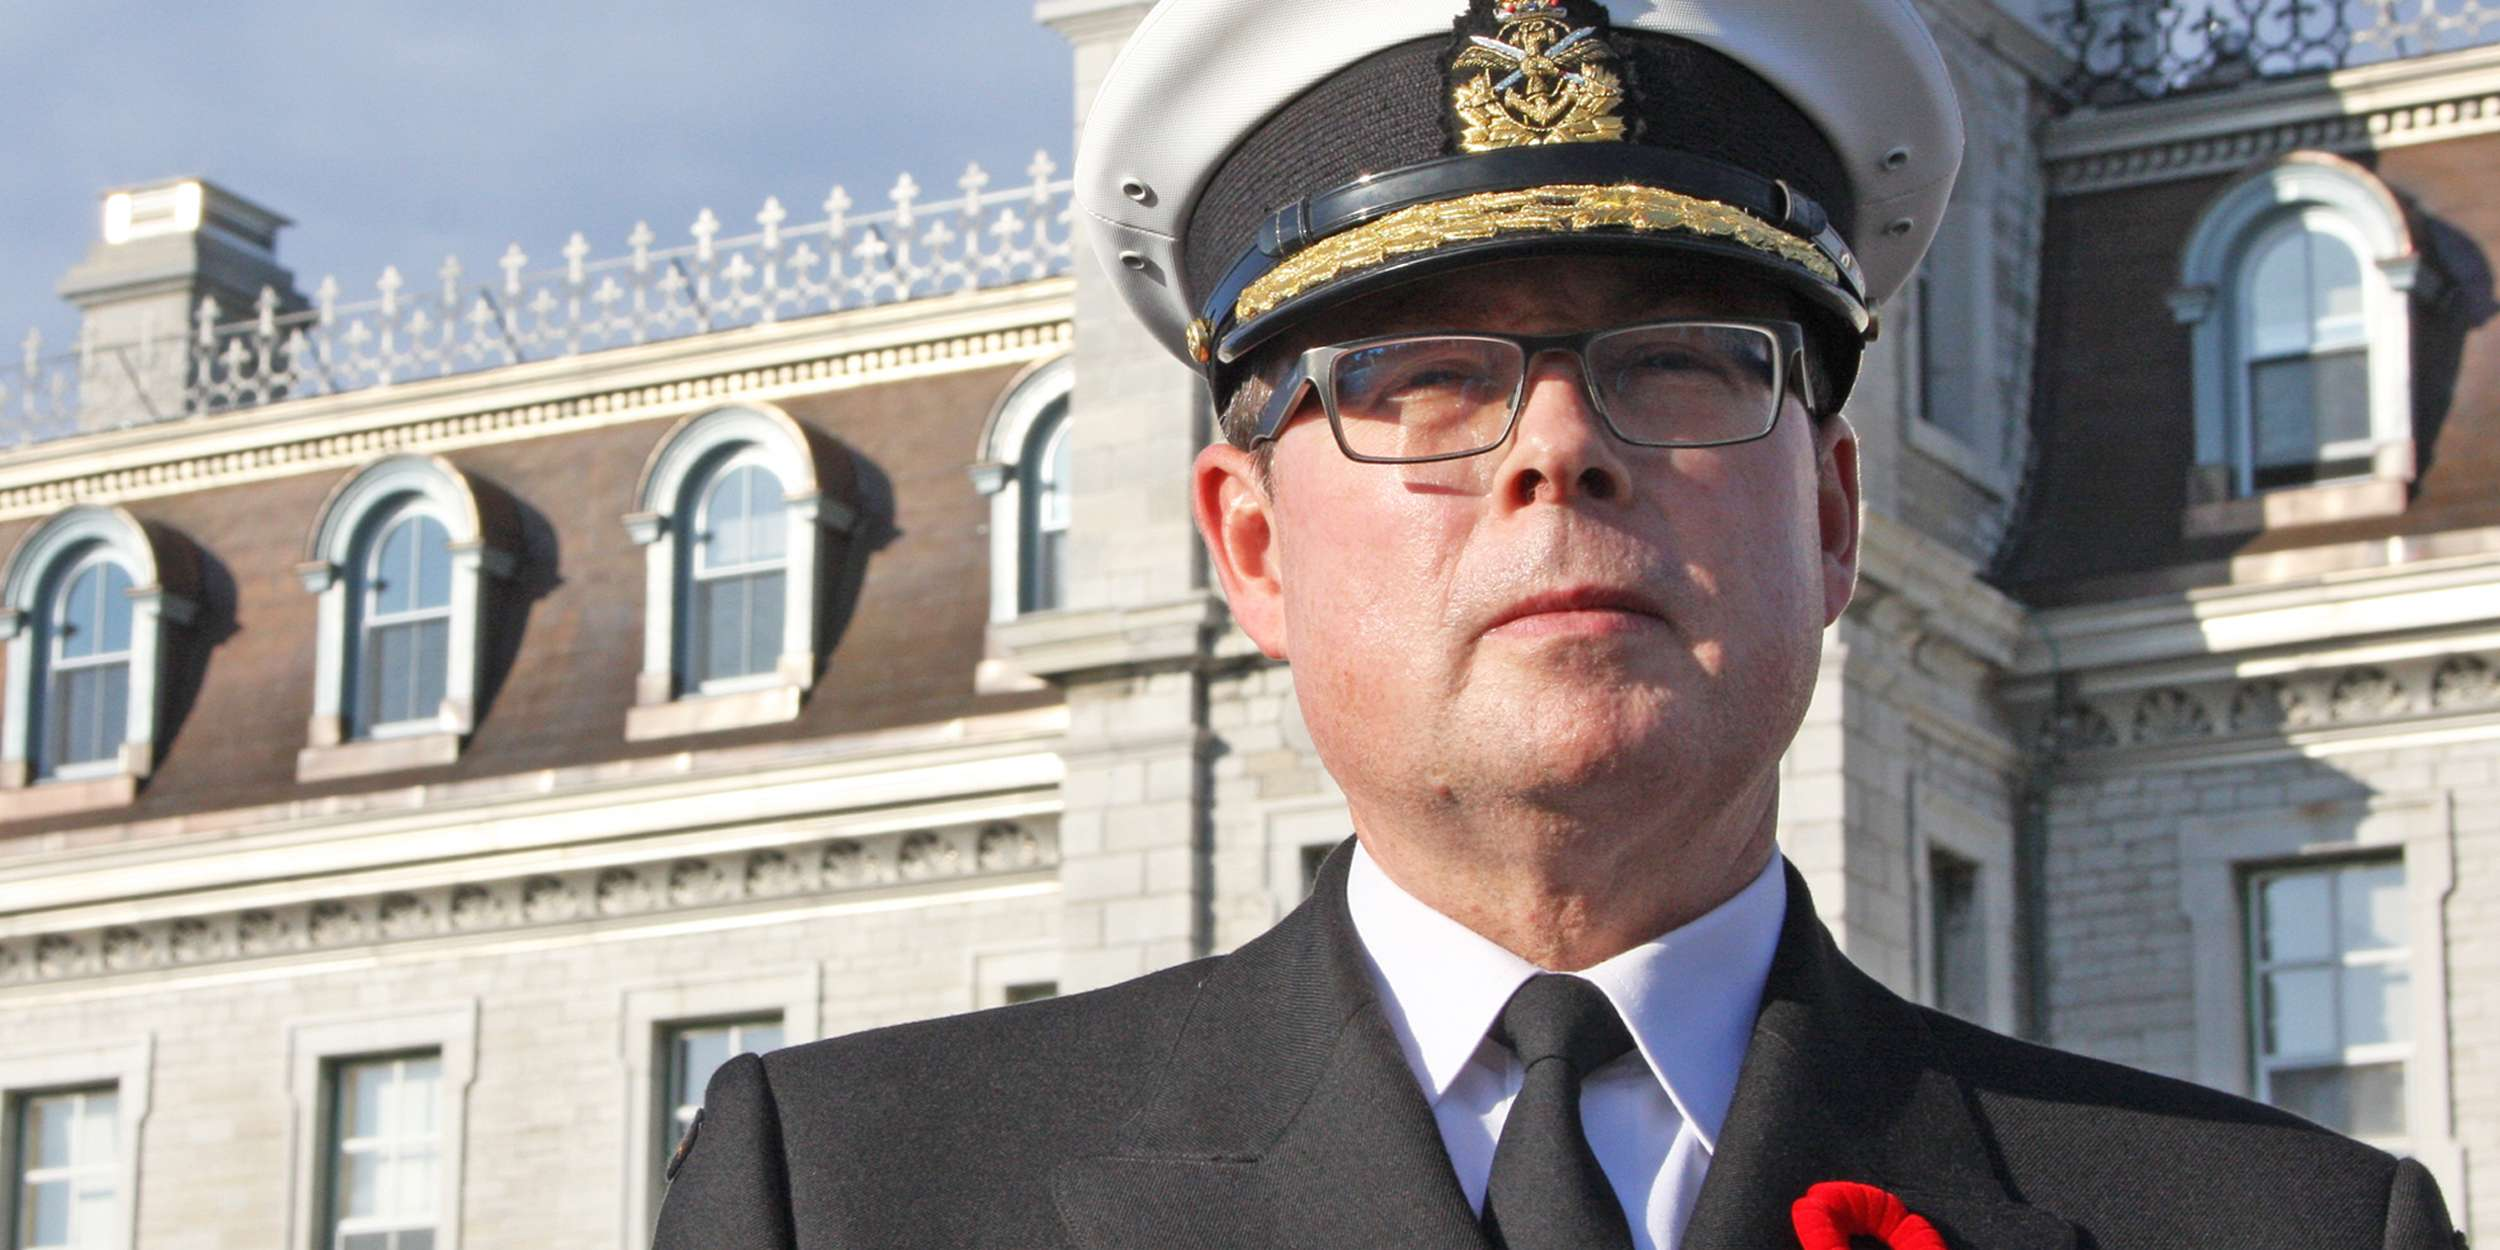 Canada is giving Navy Sailors a Big Opportunity to settle- Shortage being the reason